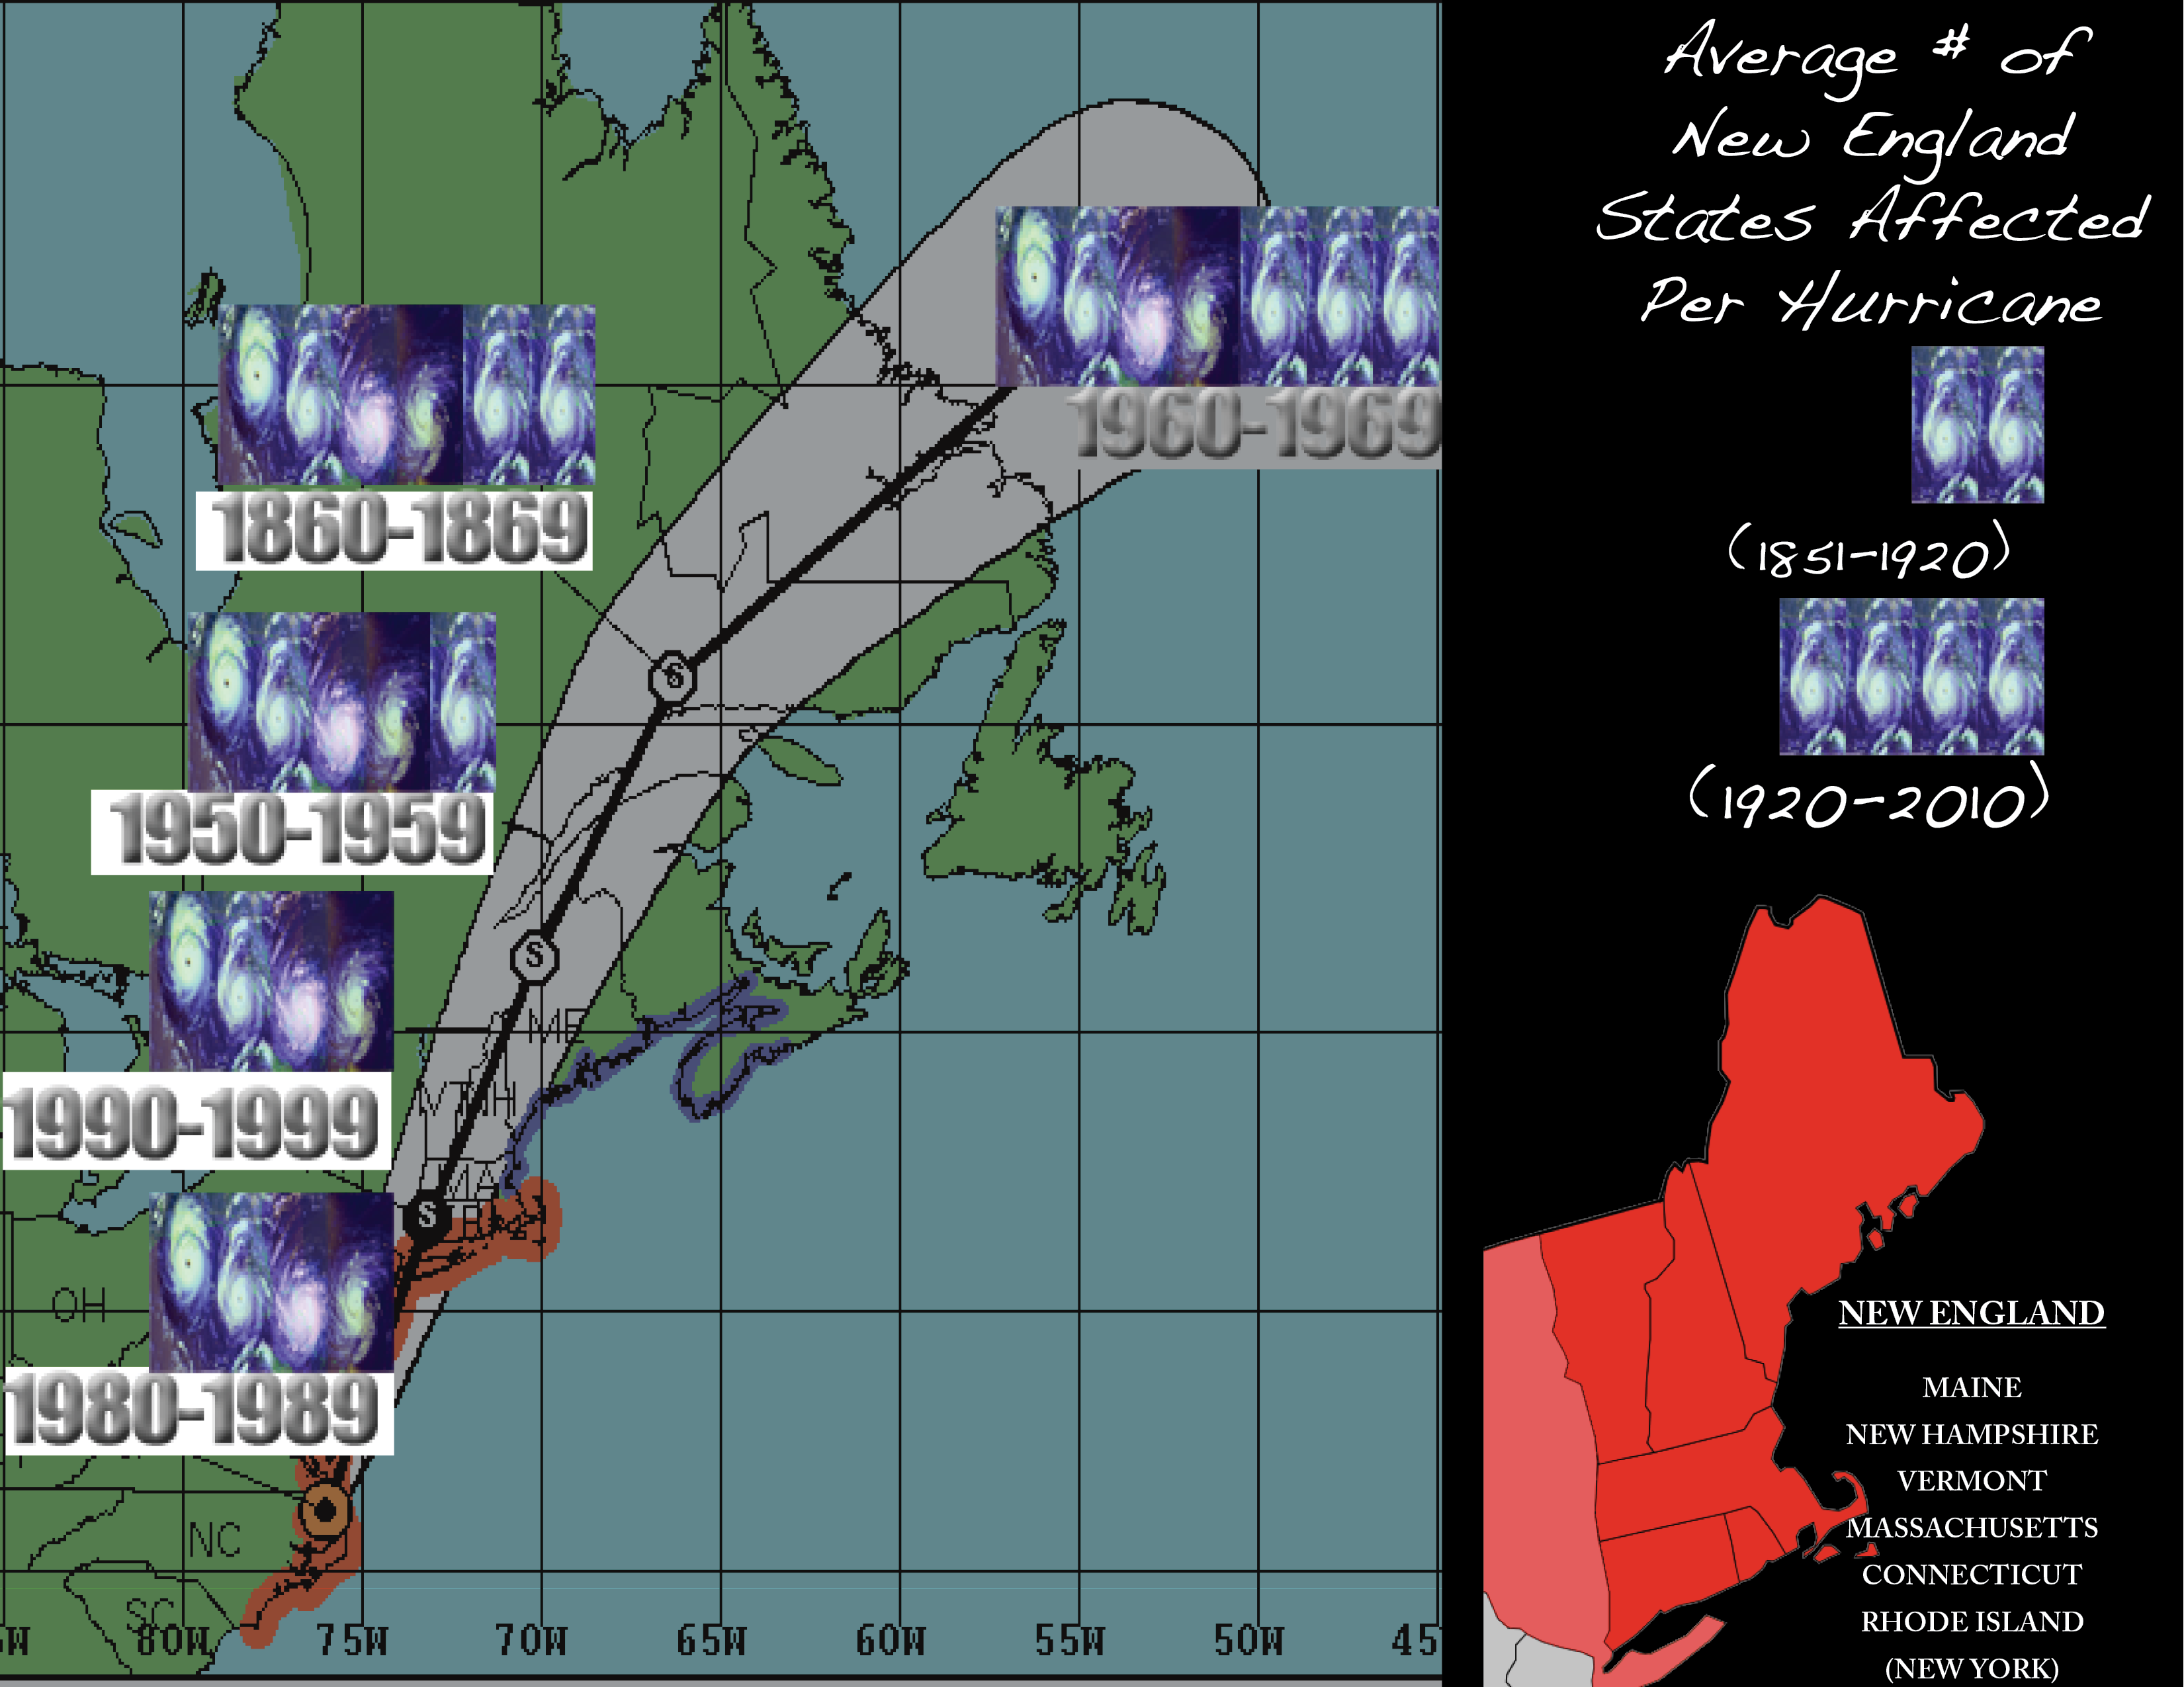 FINAL: New England Hurricanes from 1851-2010 - image 5 - student project